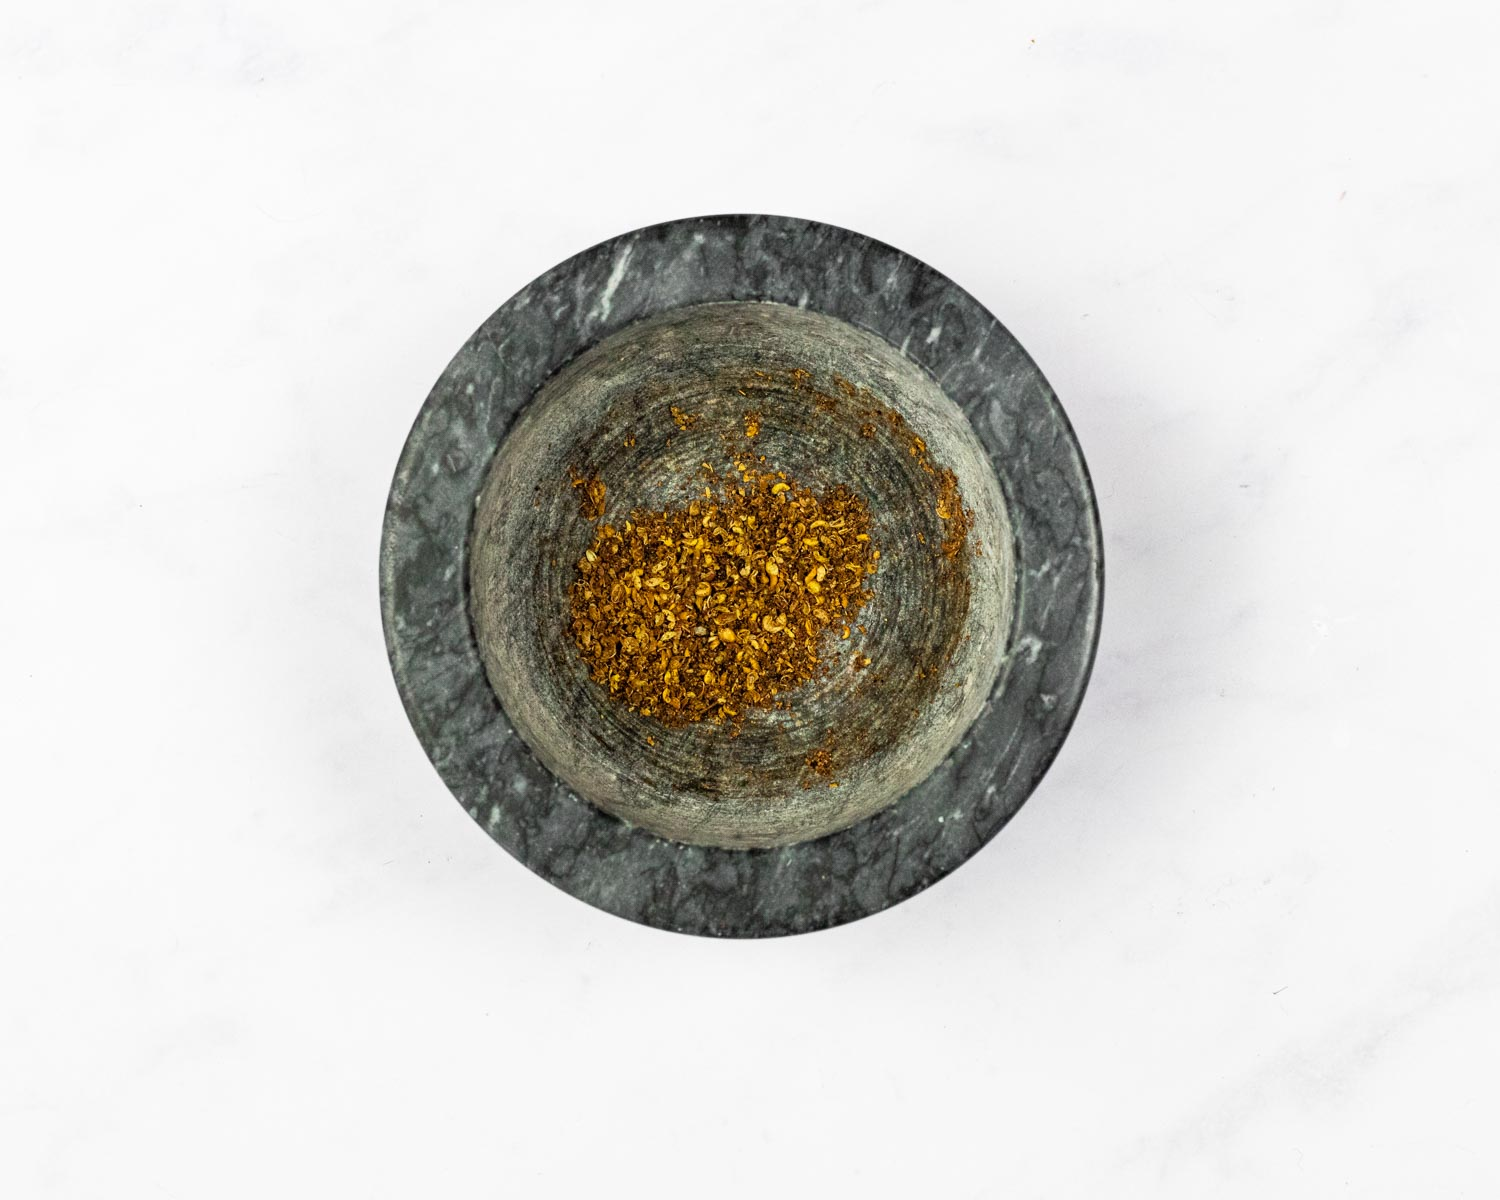 Toasted and ground Szechuan peppercorns in a bowl.